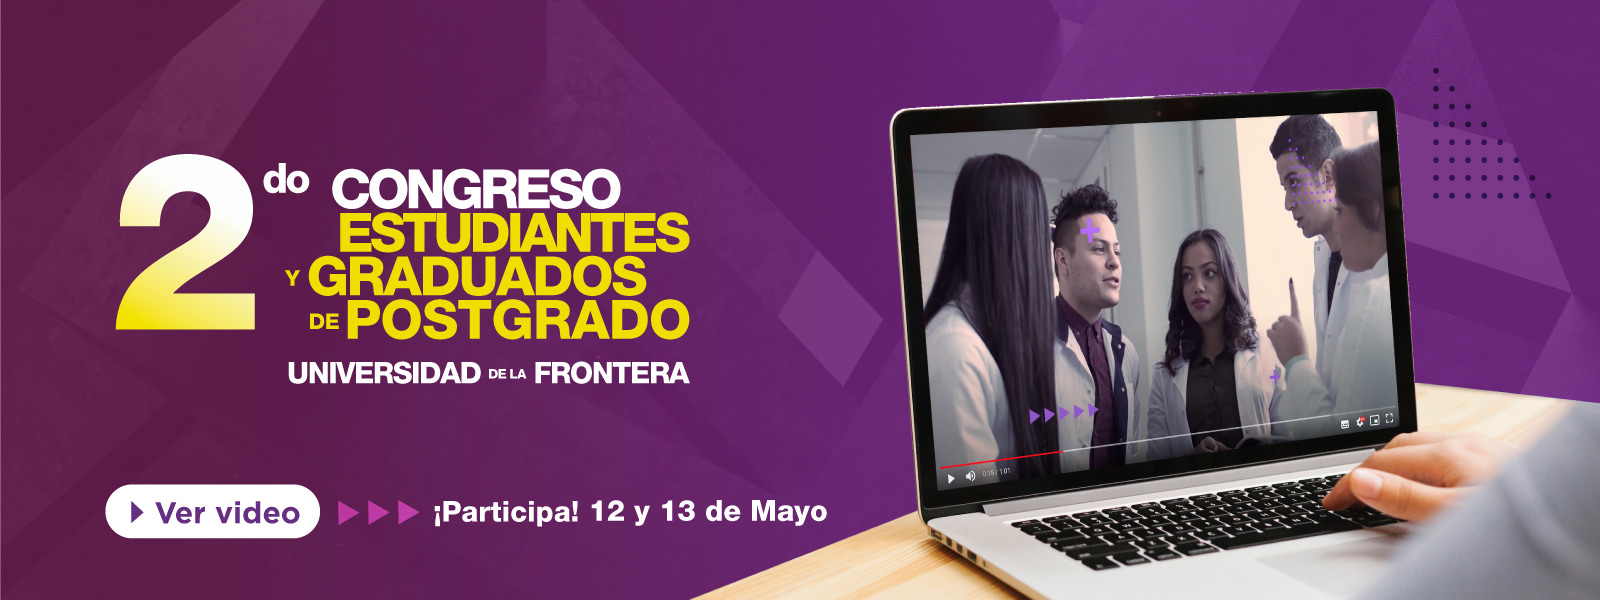 Congreso Postgrado Vídeo